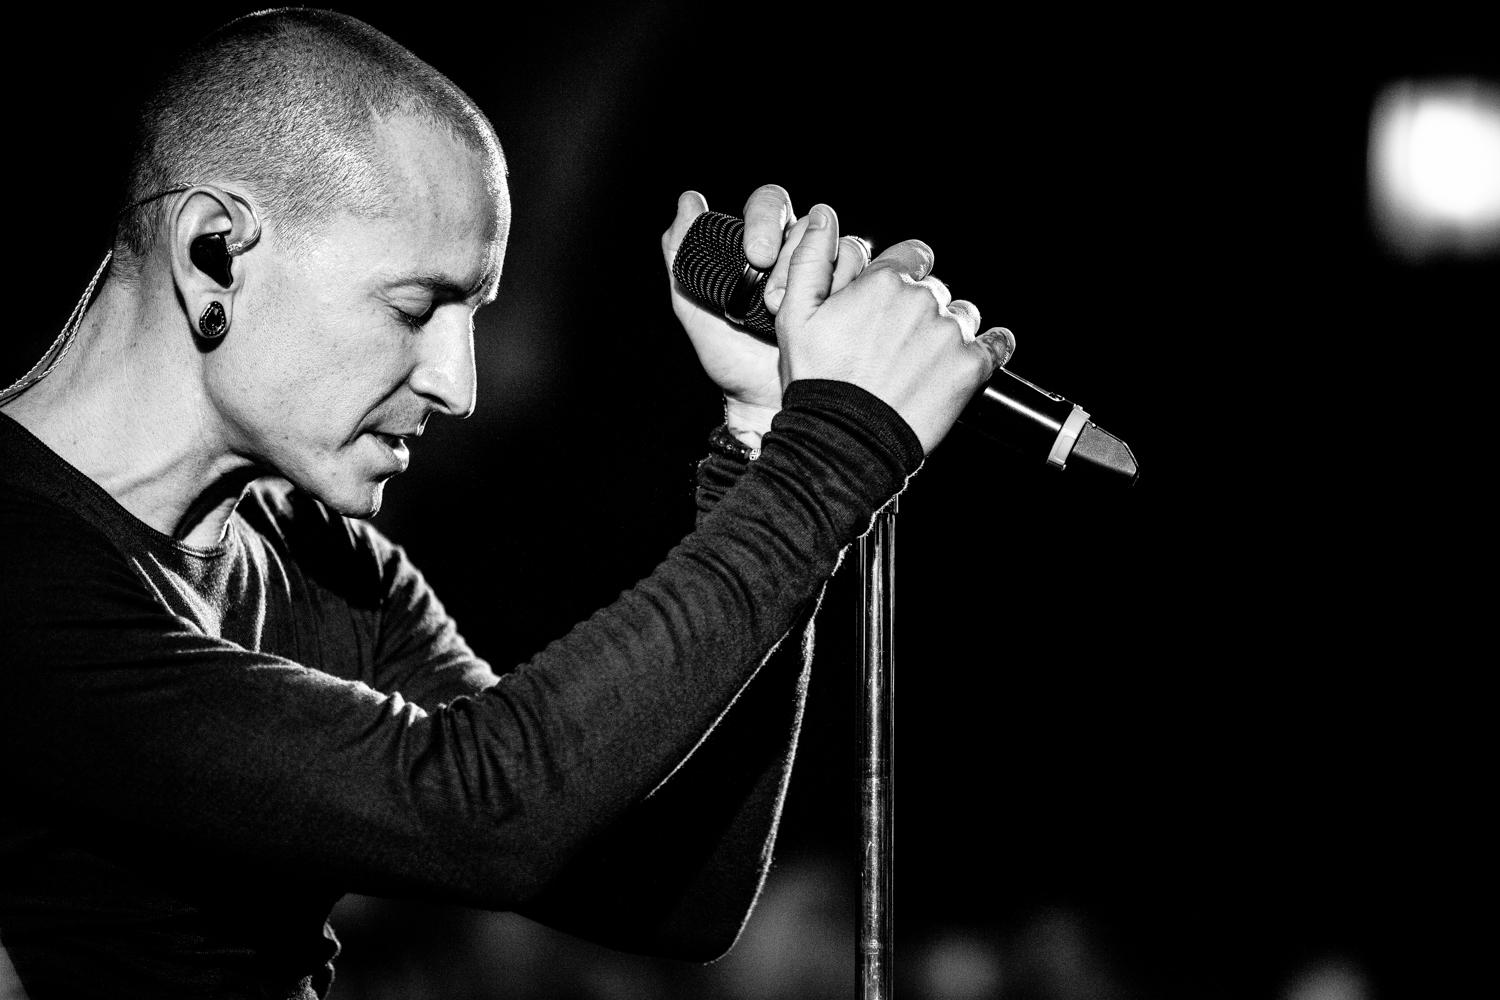 Exhibit On Linkin Park Frontman Opens Friday Kjzz